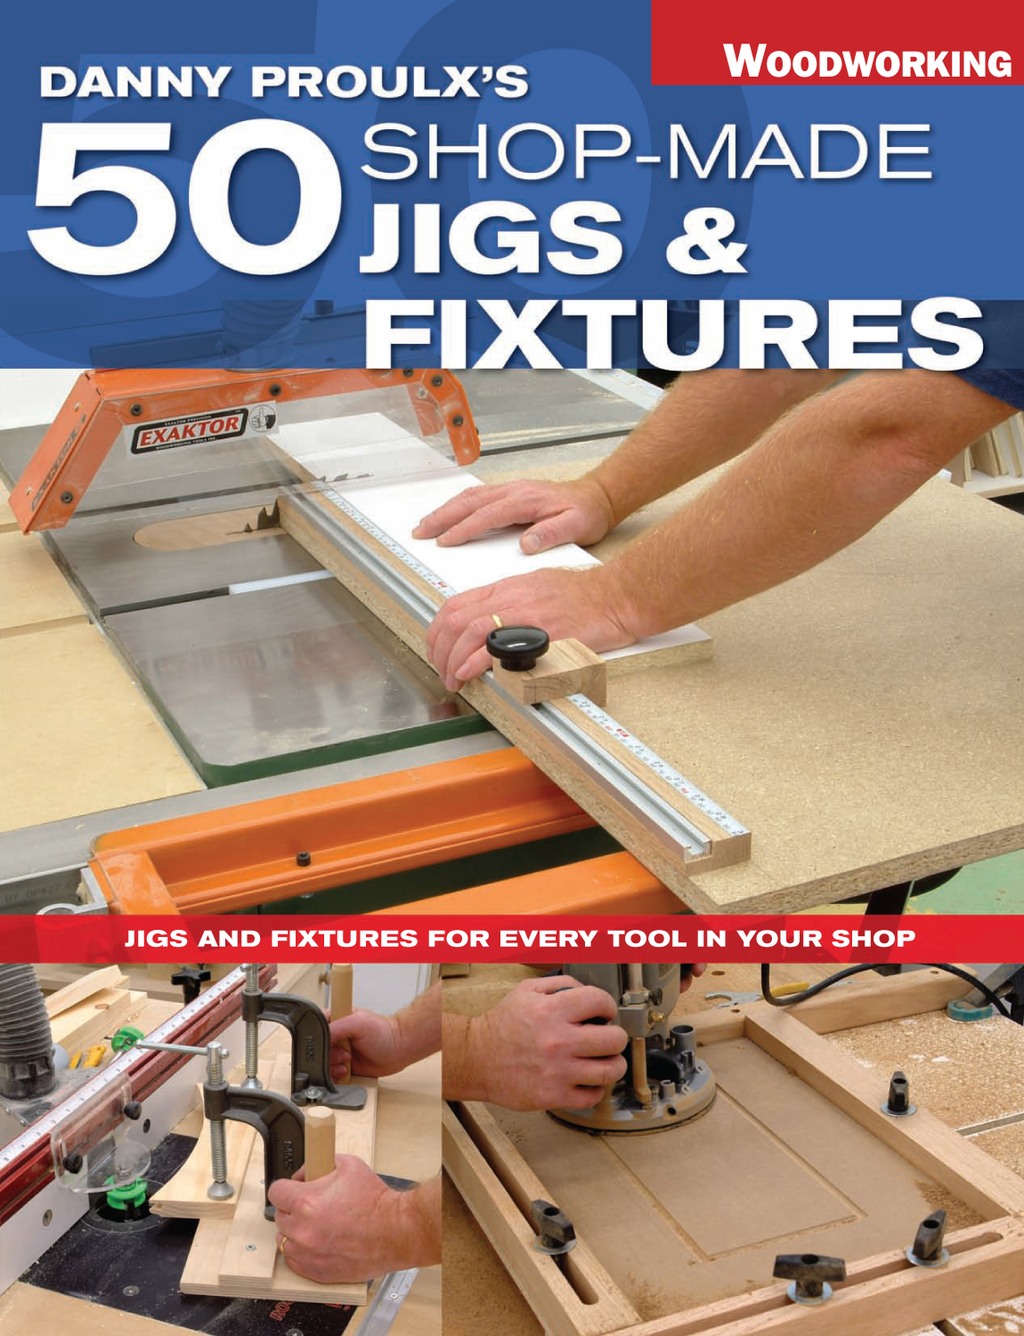 Danny Proulx's 50 Shop-Made Jigs & Fixtures Jigs & Fixtures For Every Tool in Your Shop